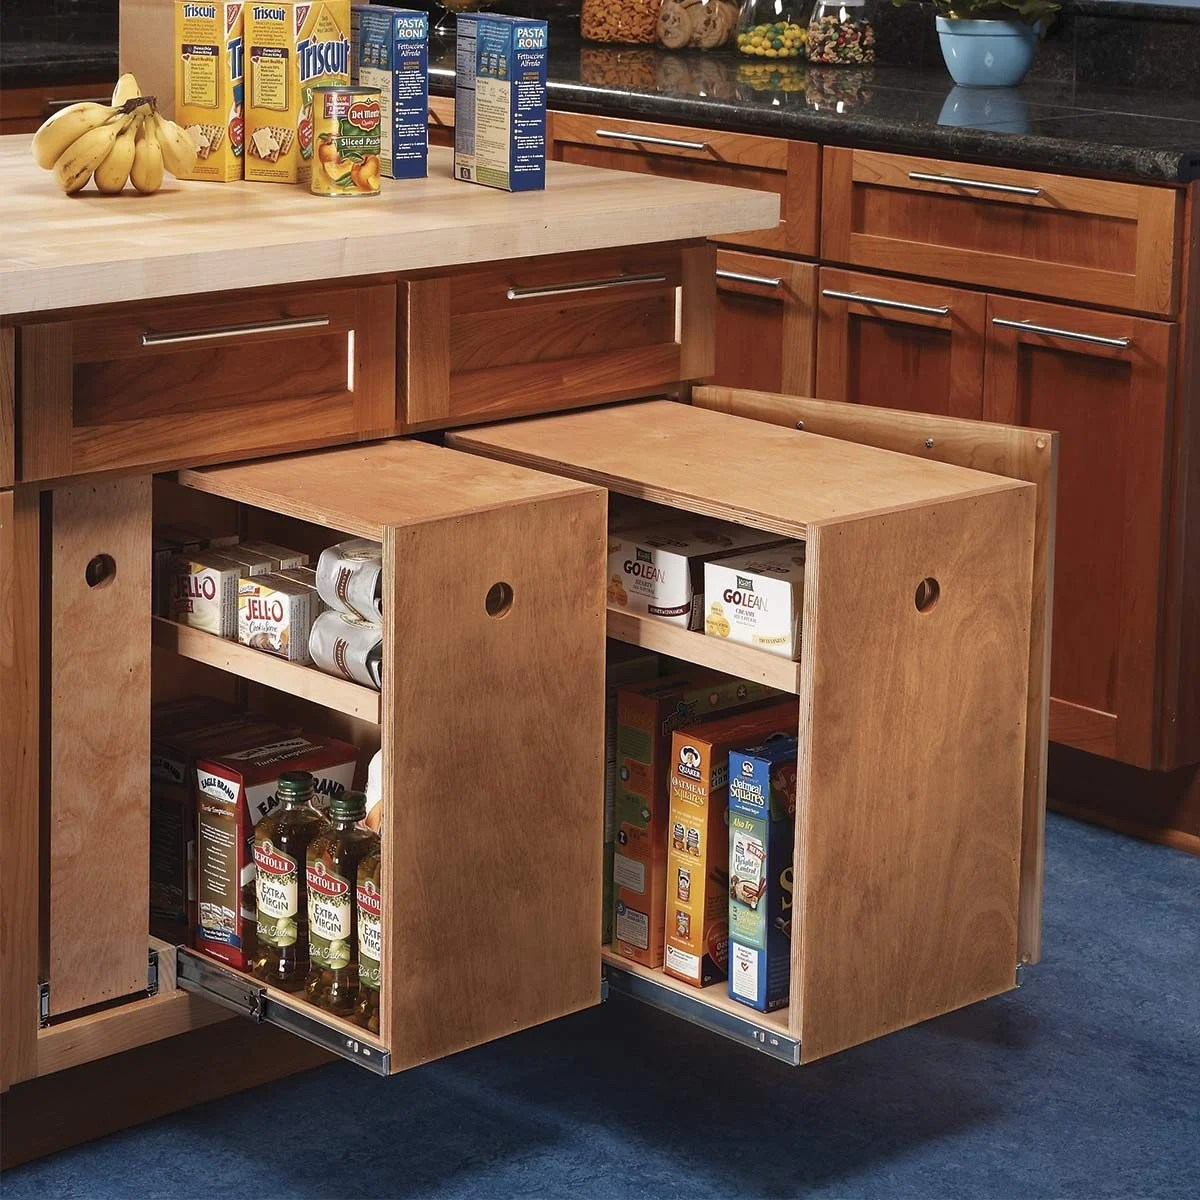 Building A Kitchen Cabinet 30 Cheap Kitchen Cabinet Add Ons You Can Diy The Family